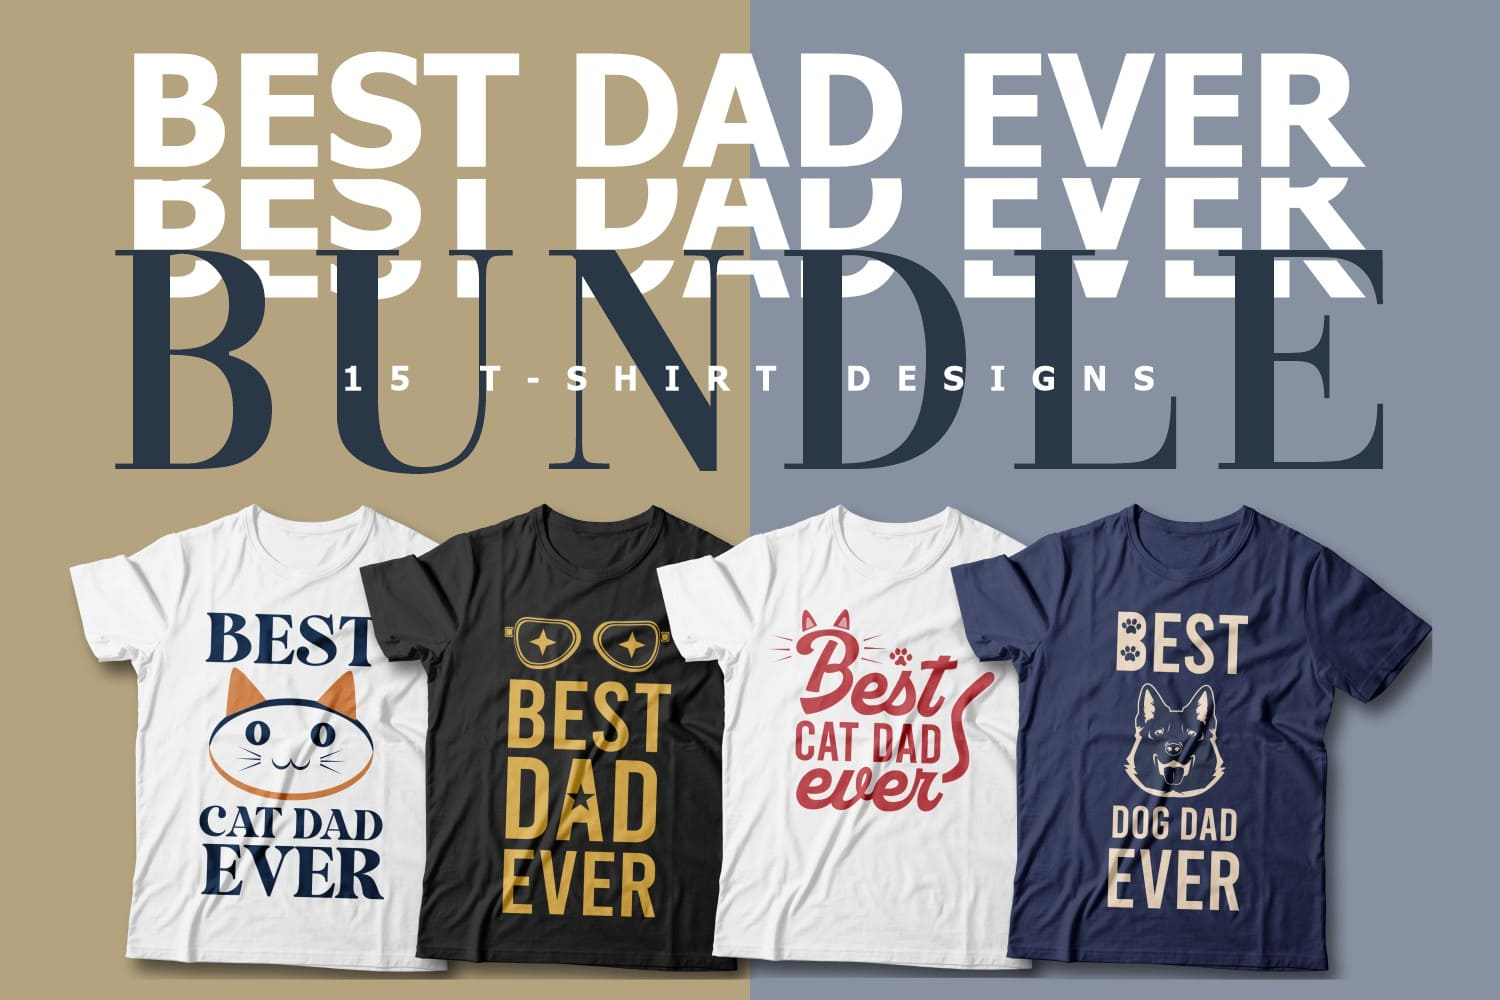 Best Dad Ever T-shirts Cover image.